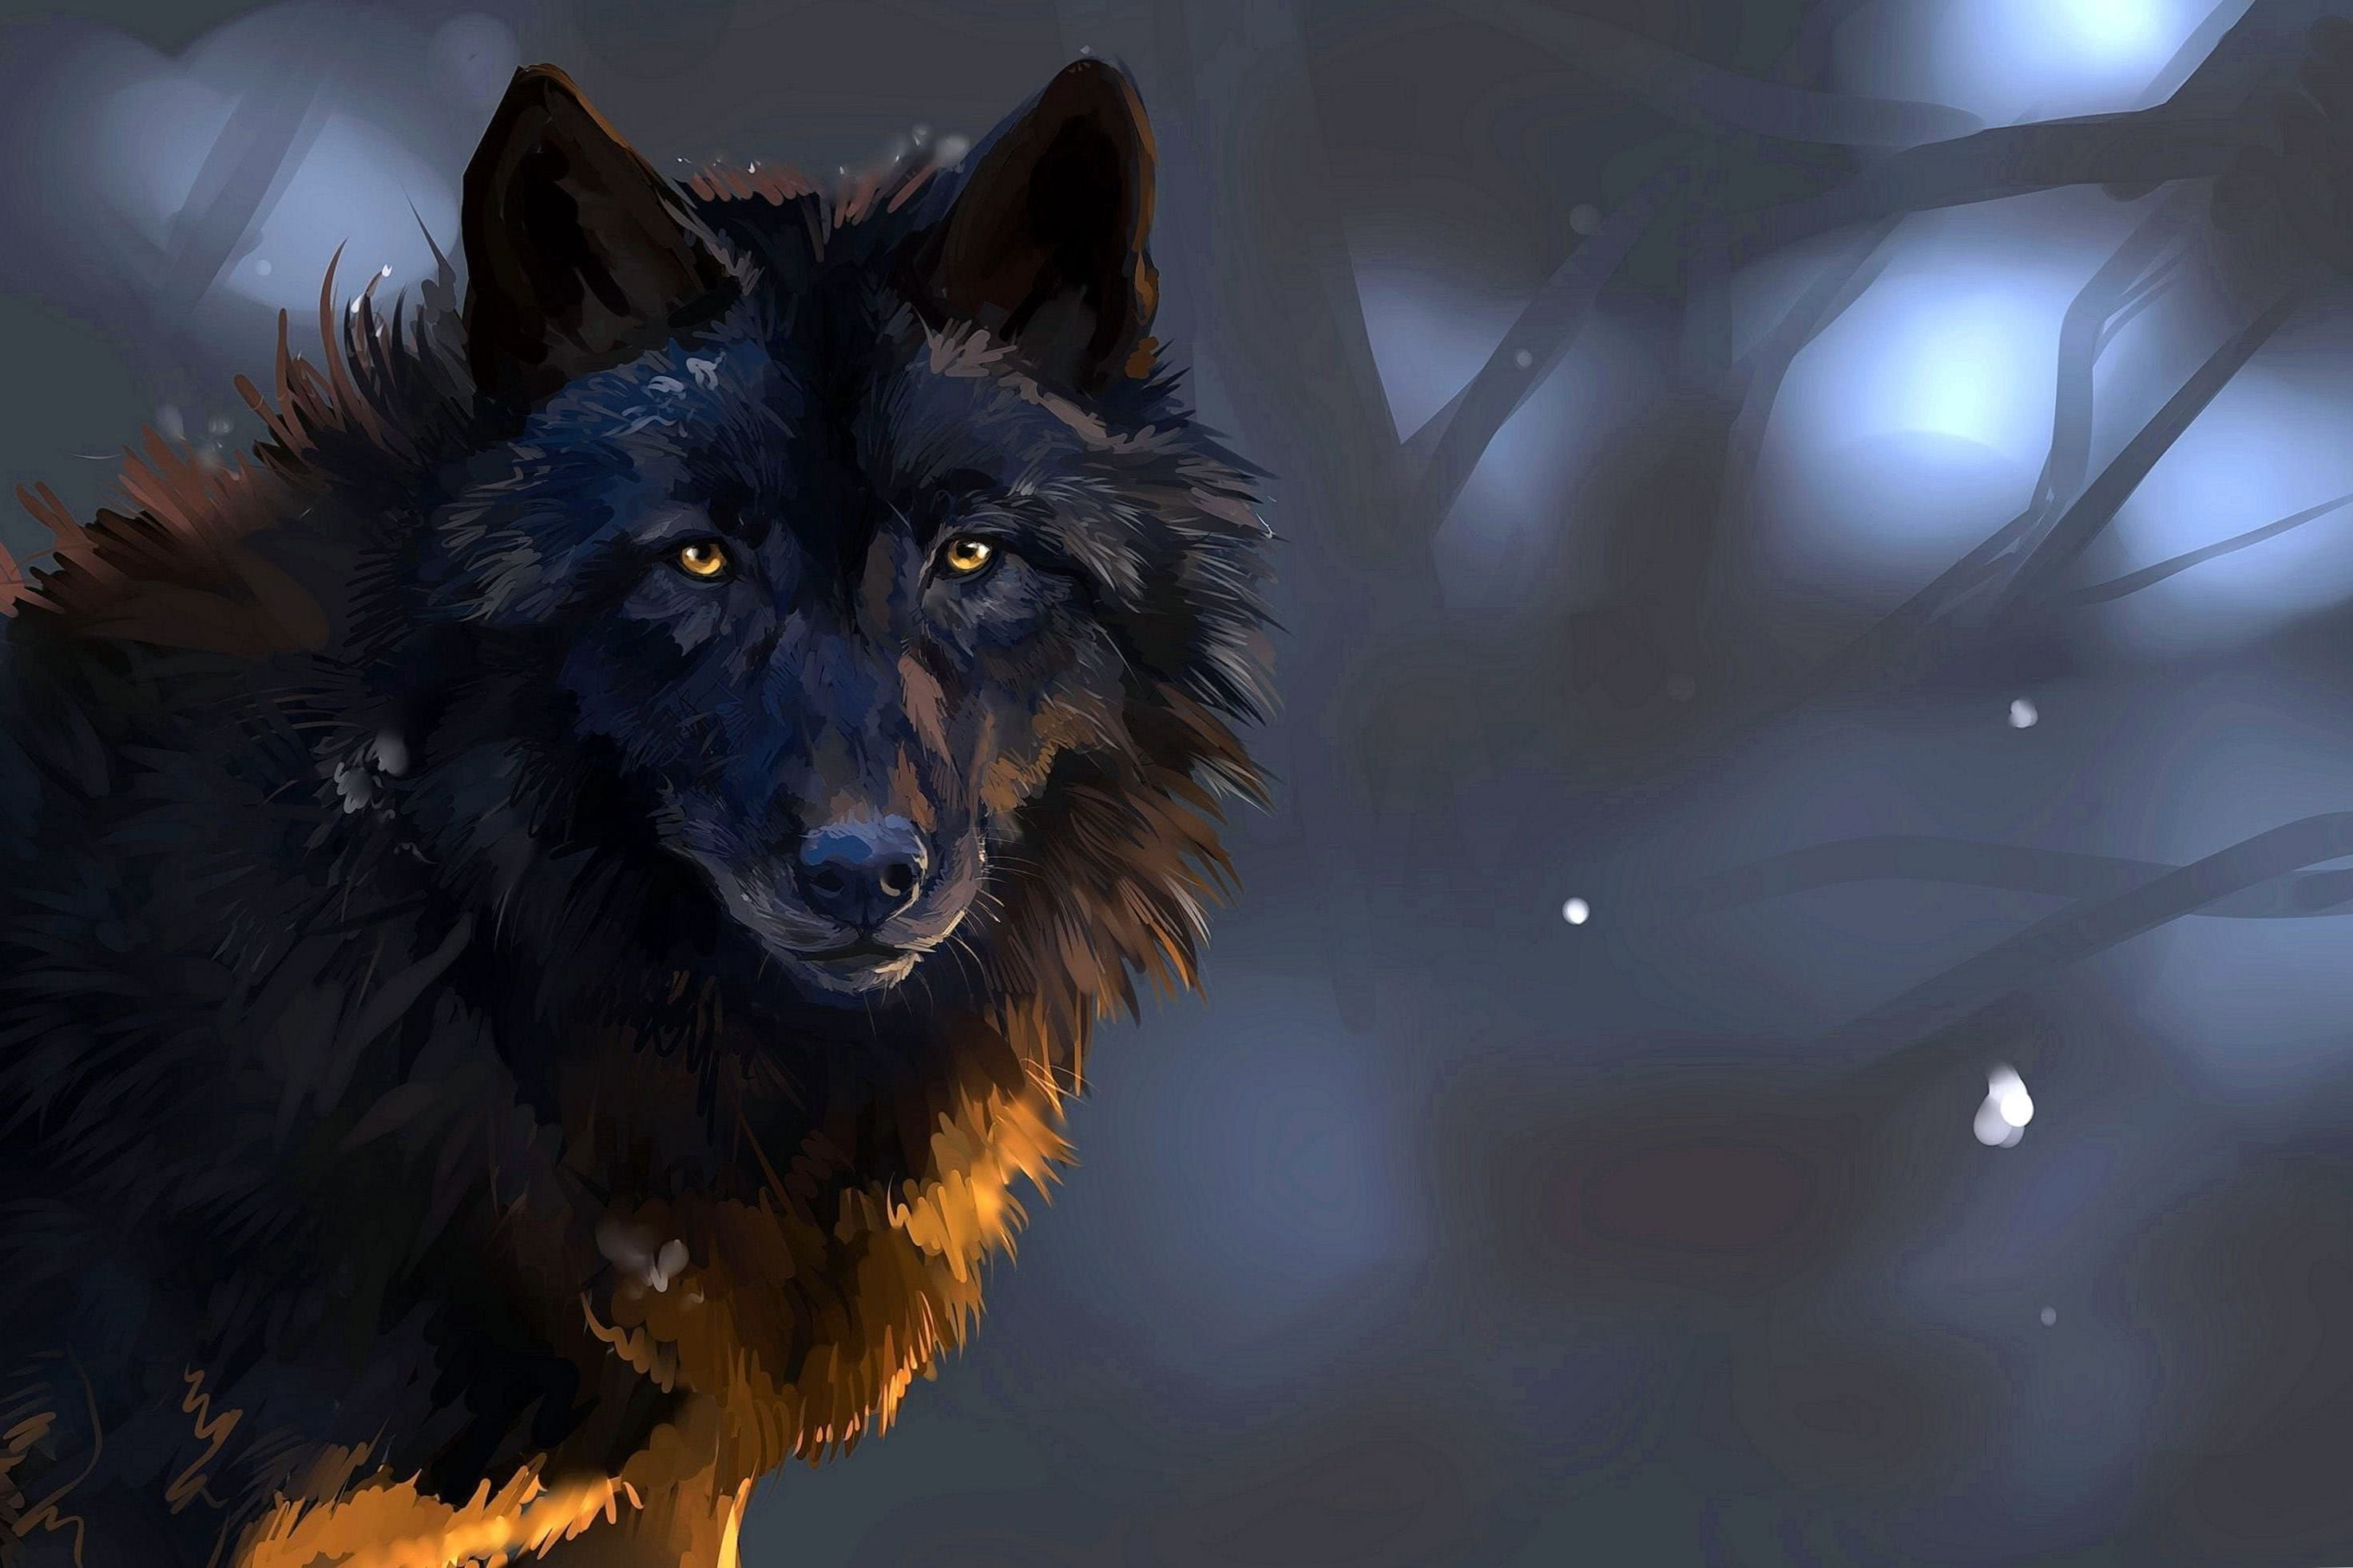 HD Wolf Wallpaper For Laptop